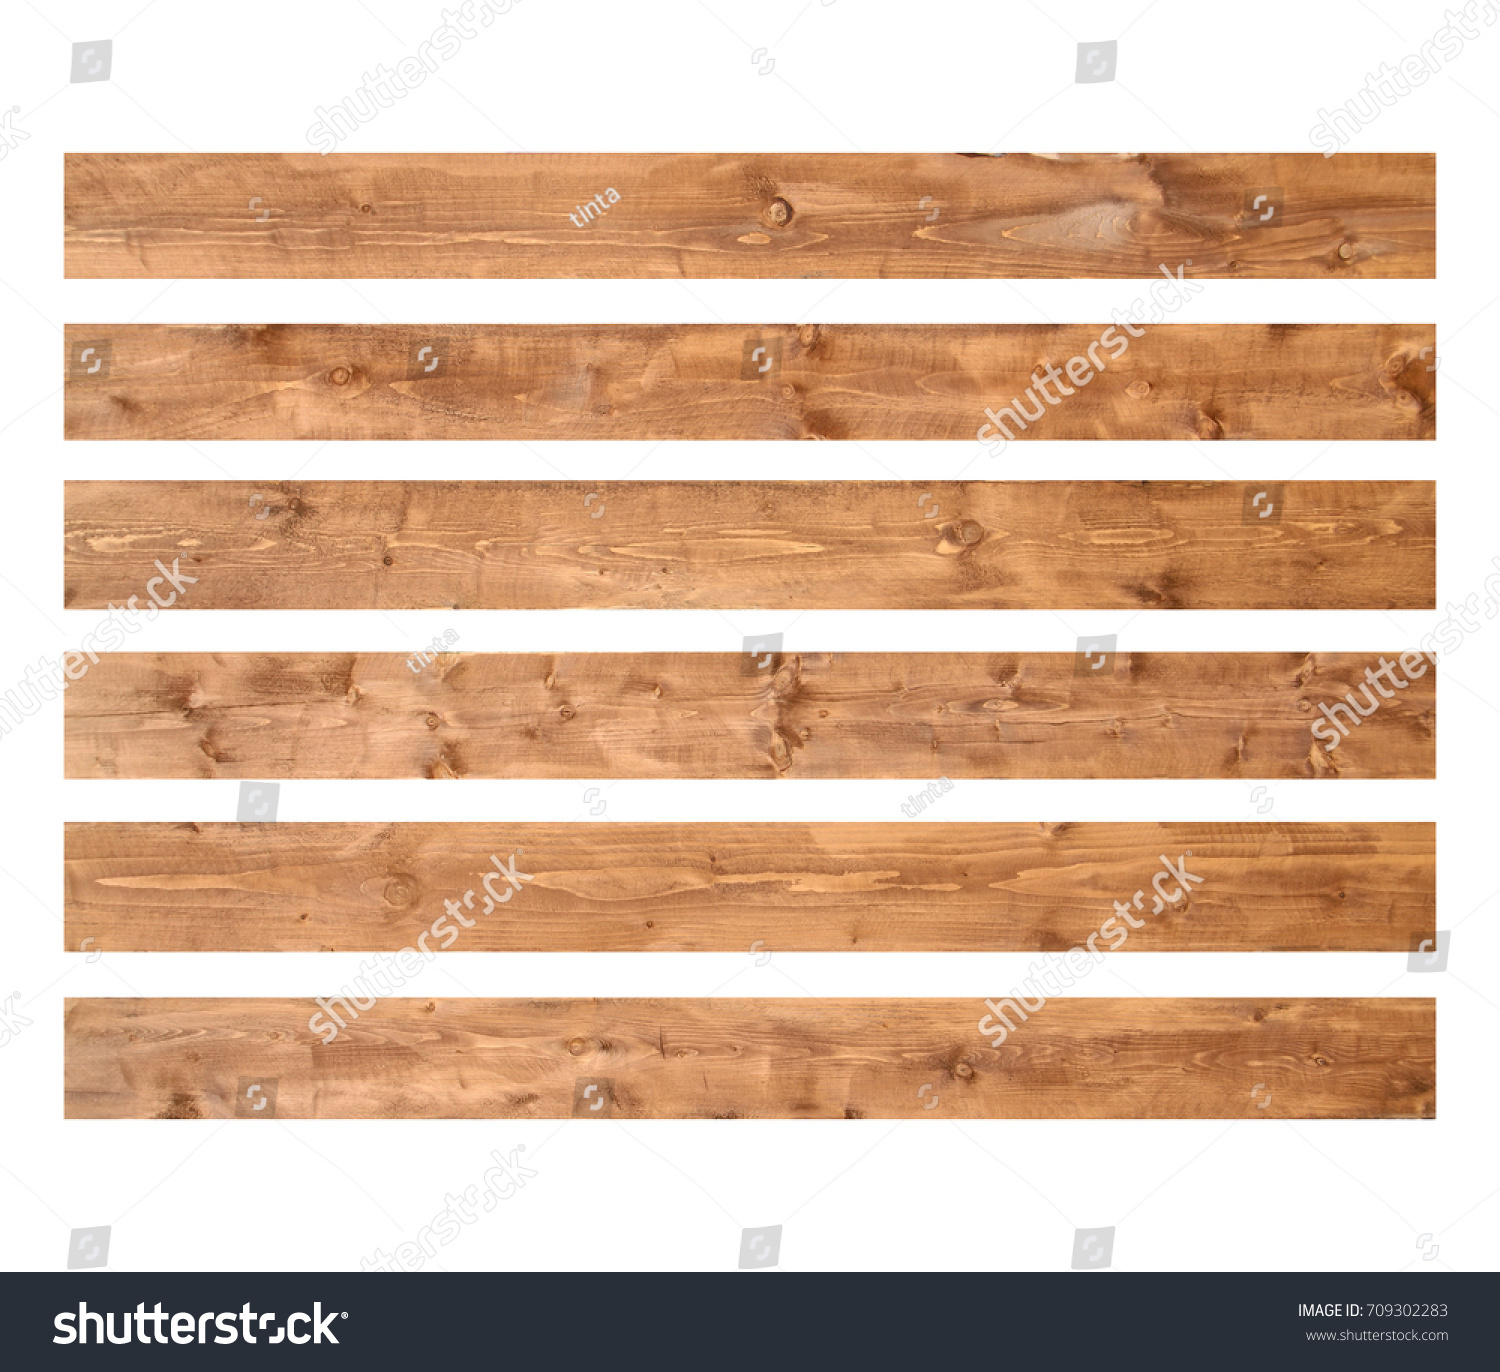 Old wood planks isolated on white background. Brown wooden texture.  #709302283